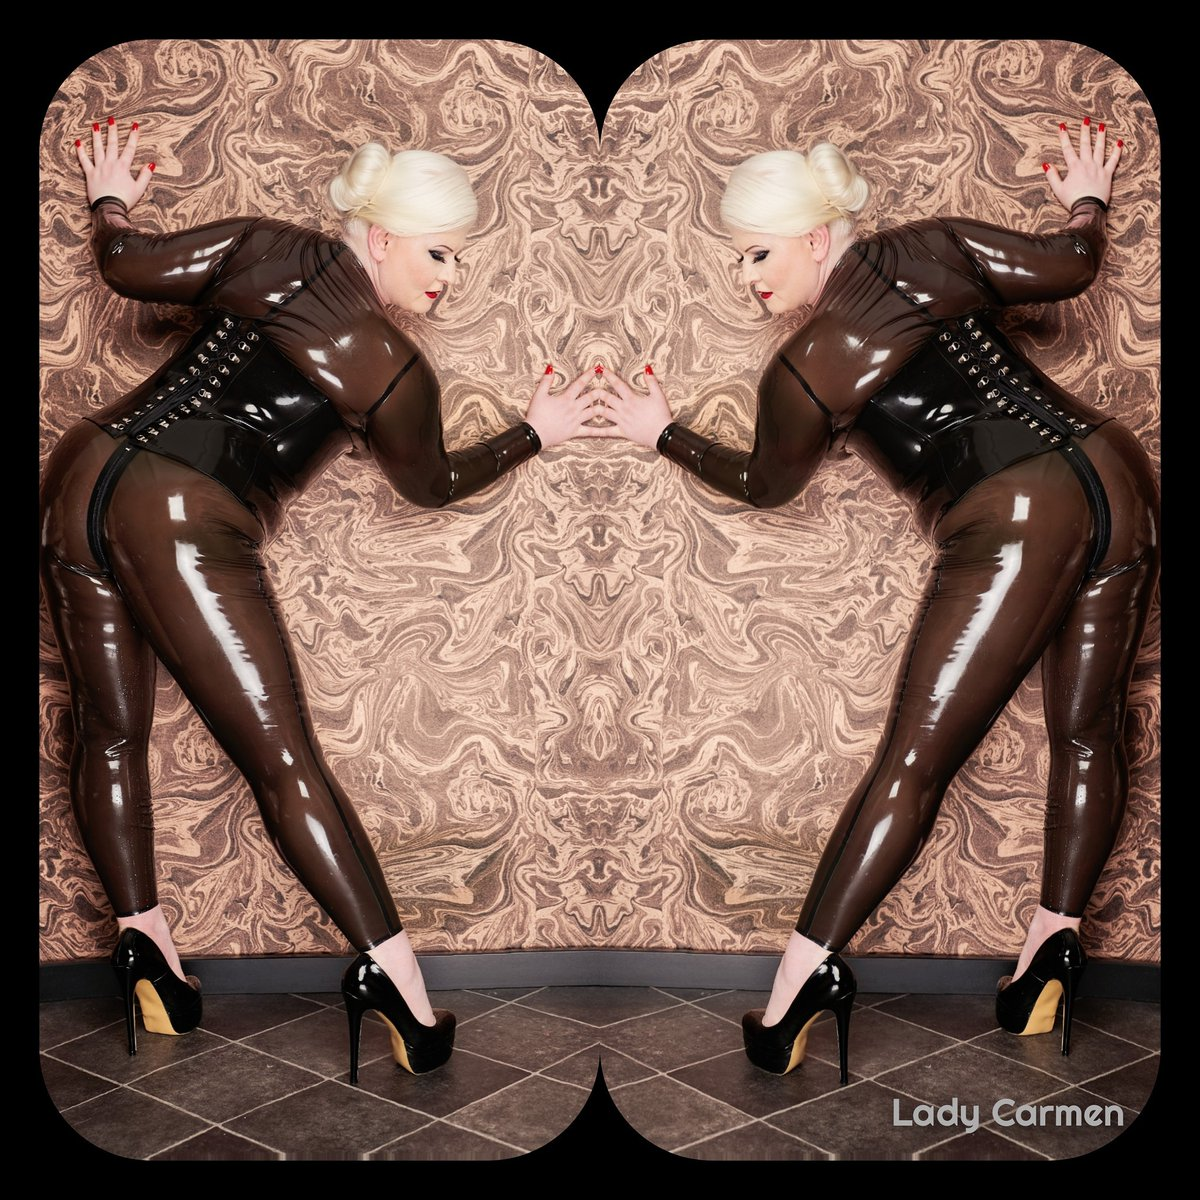 Like a #secondskin  Like to be packed and #feelfree #latex #rubber #gummi #corsage #highheels #costume #suits #mirrorpic #rednails#redlip #iceblonde #photographylovers #photoshootingpic.twitter.com/mKDRSC58VR